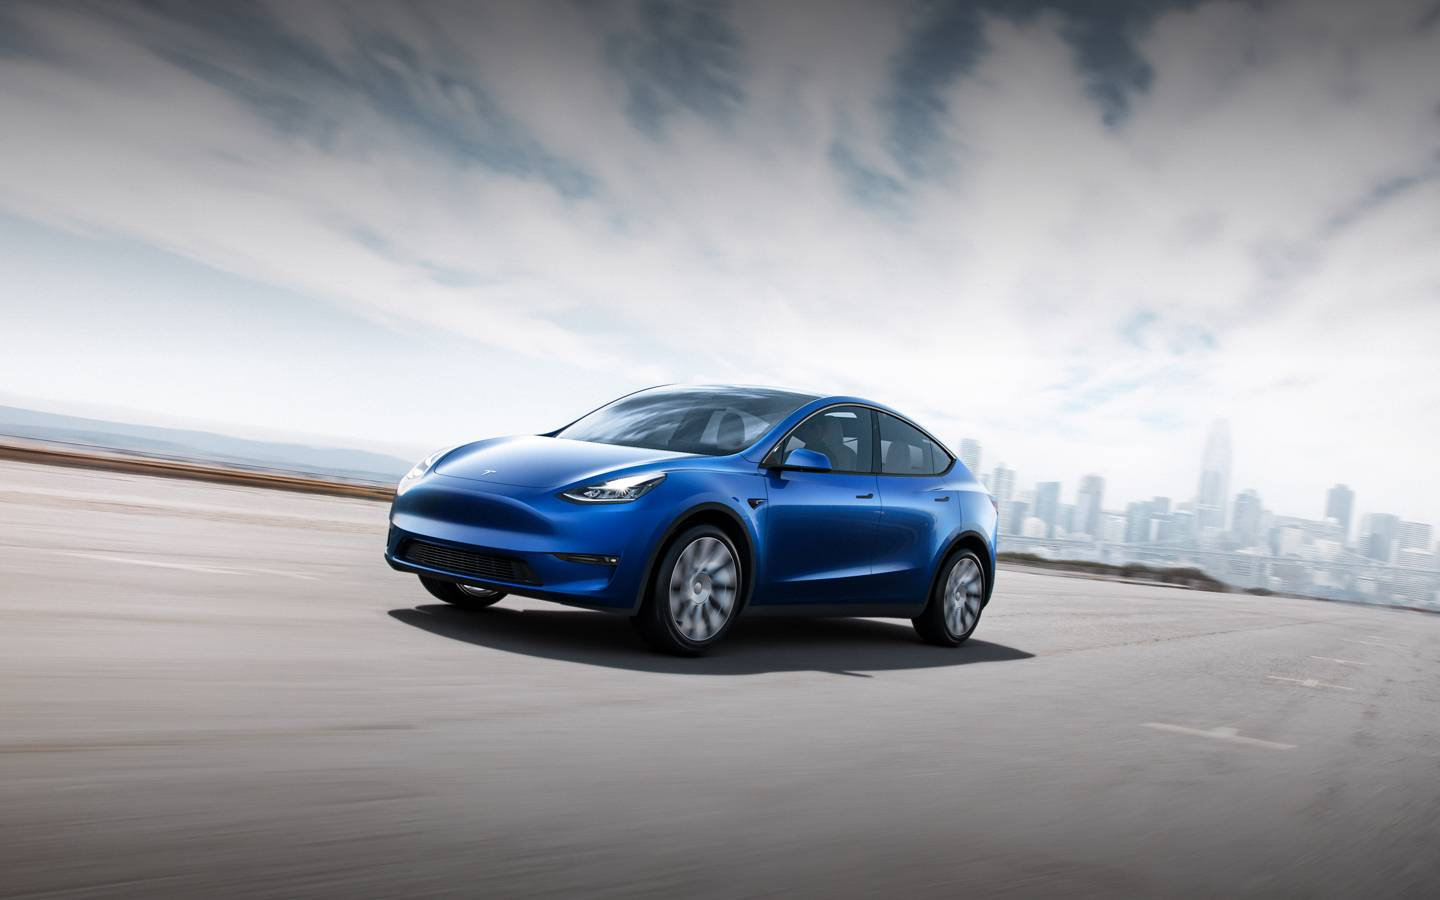 Friday briefing: Tesla launches Model Y mass-market compact SUV